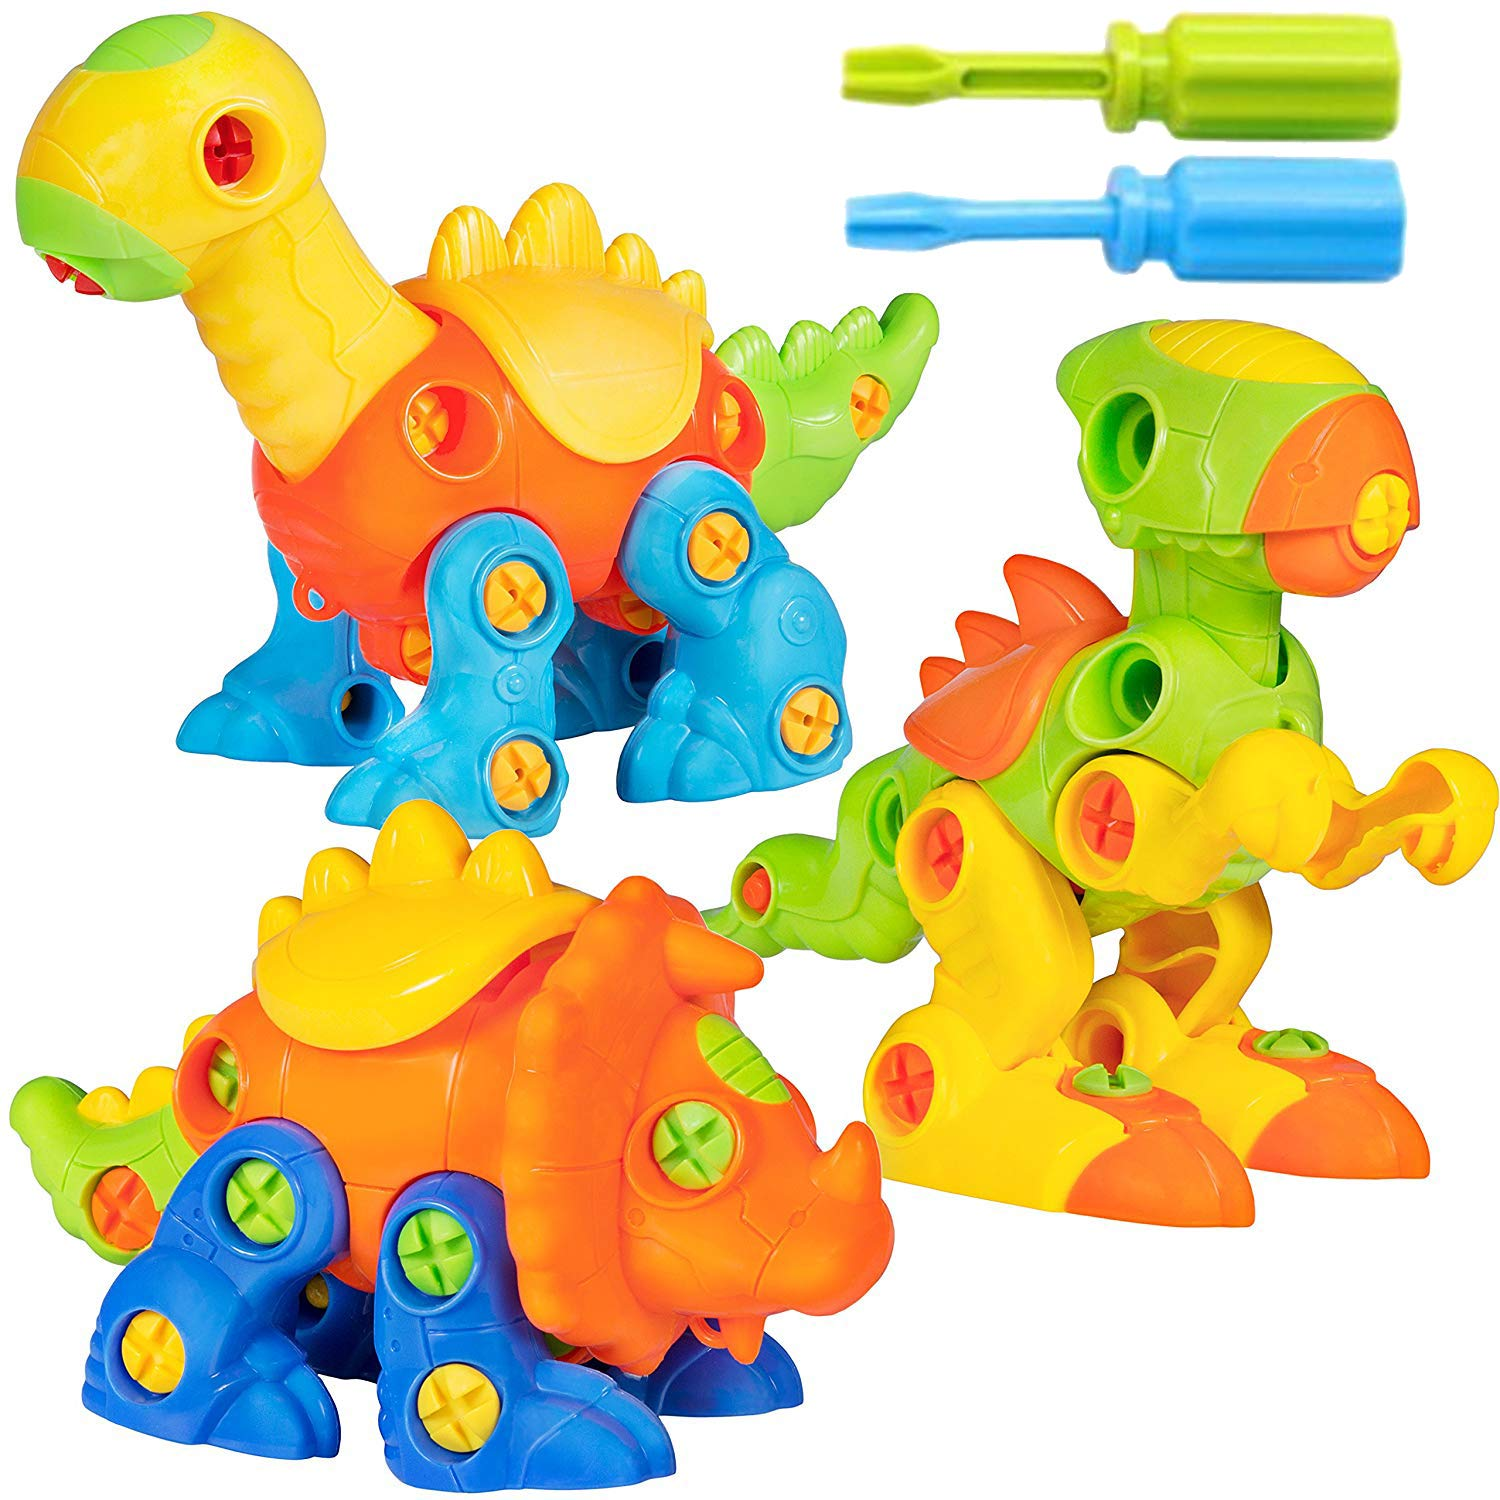 Liberty Imports Build A Dino Take Apart Dinosaur Toys | 106 Piece Set of 3 Construction Engineering Building STEM Learning Kids Puzzle Playset with Tools and Screws